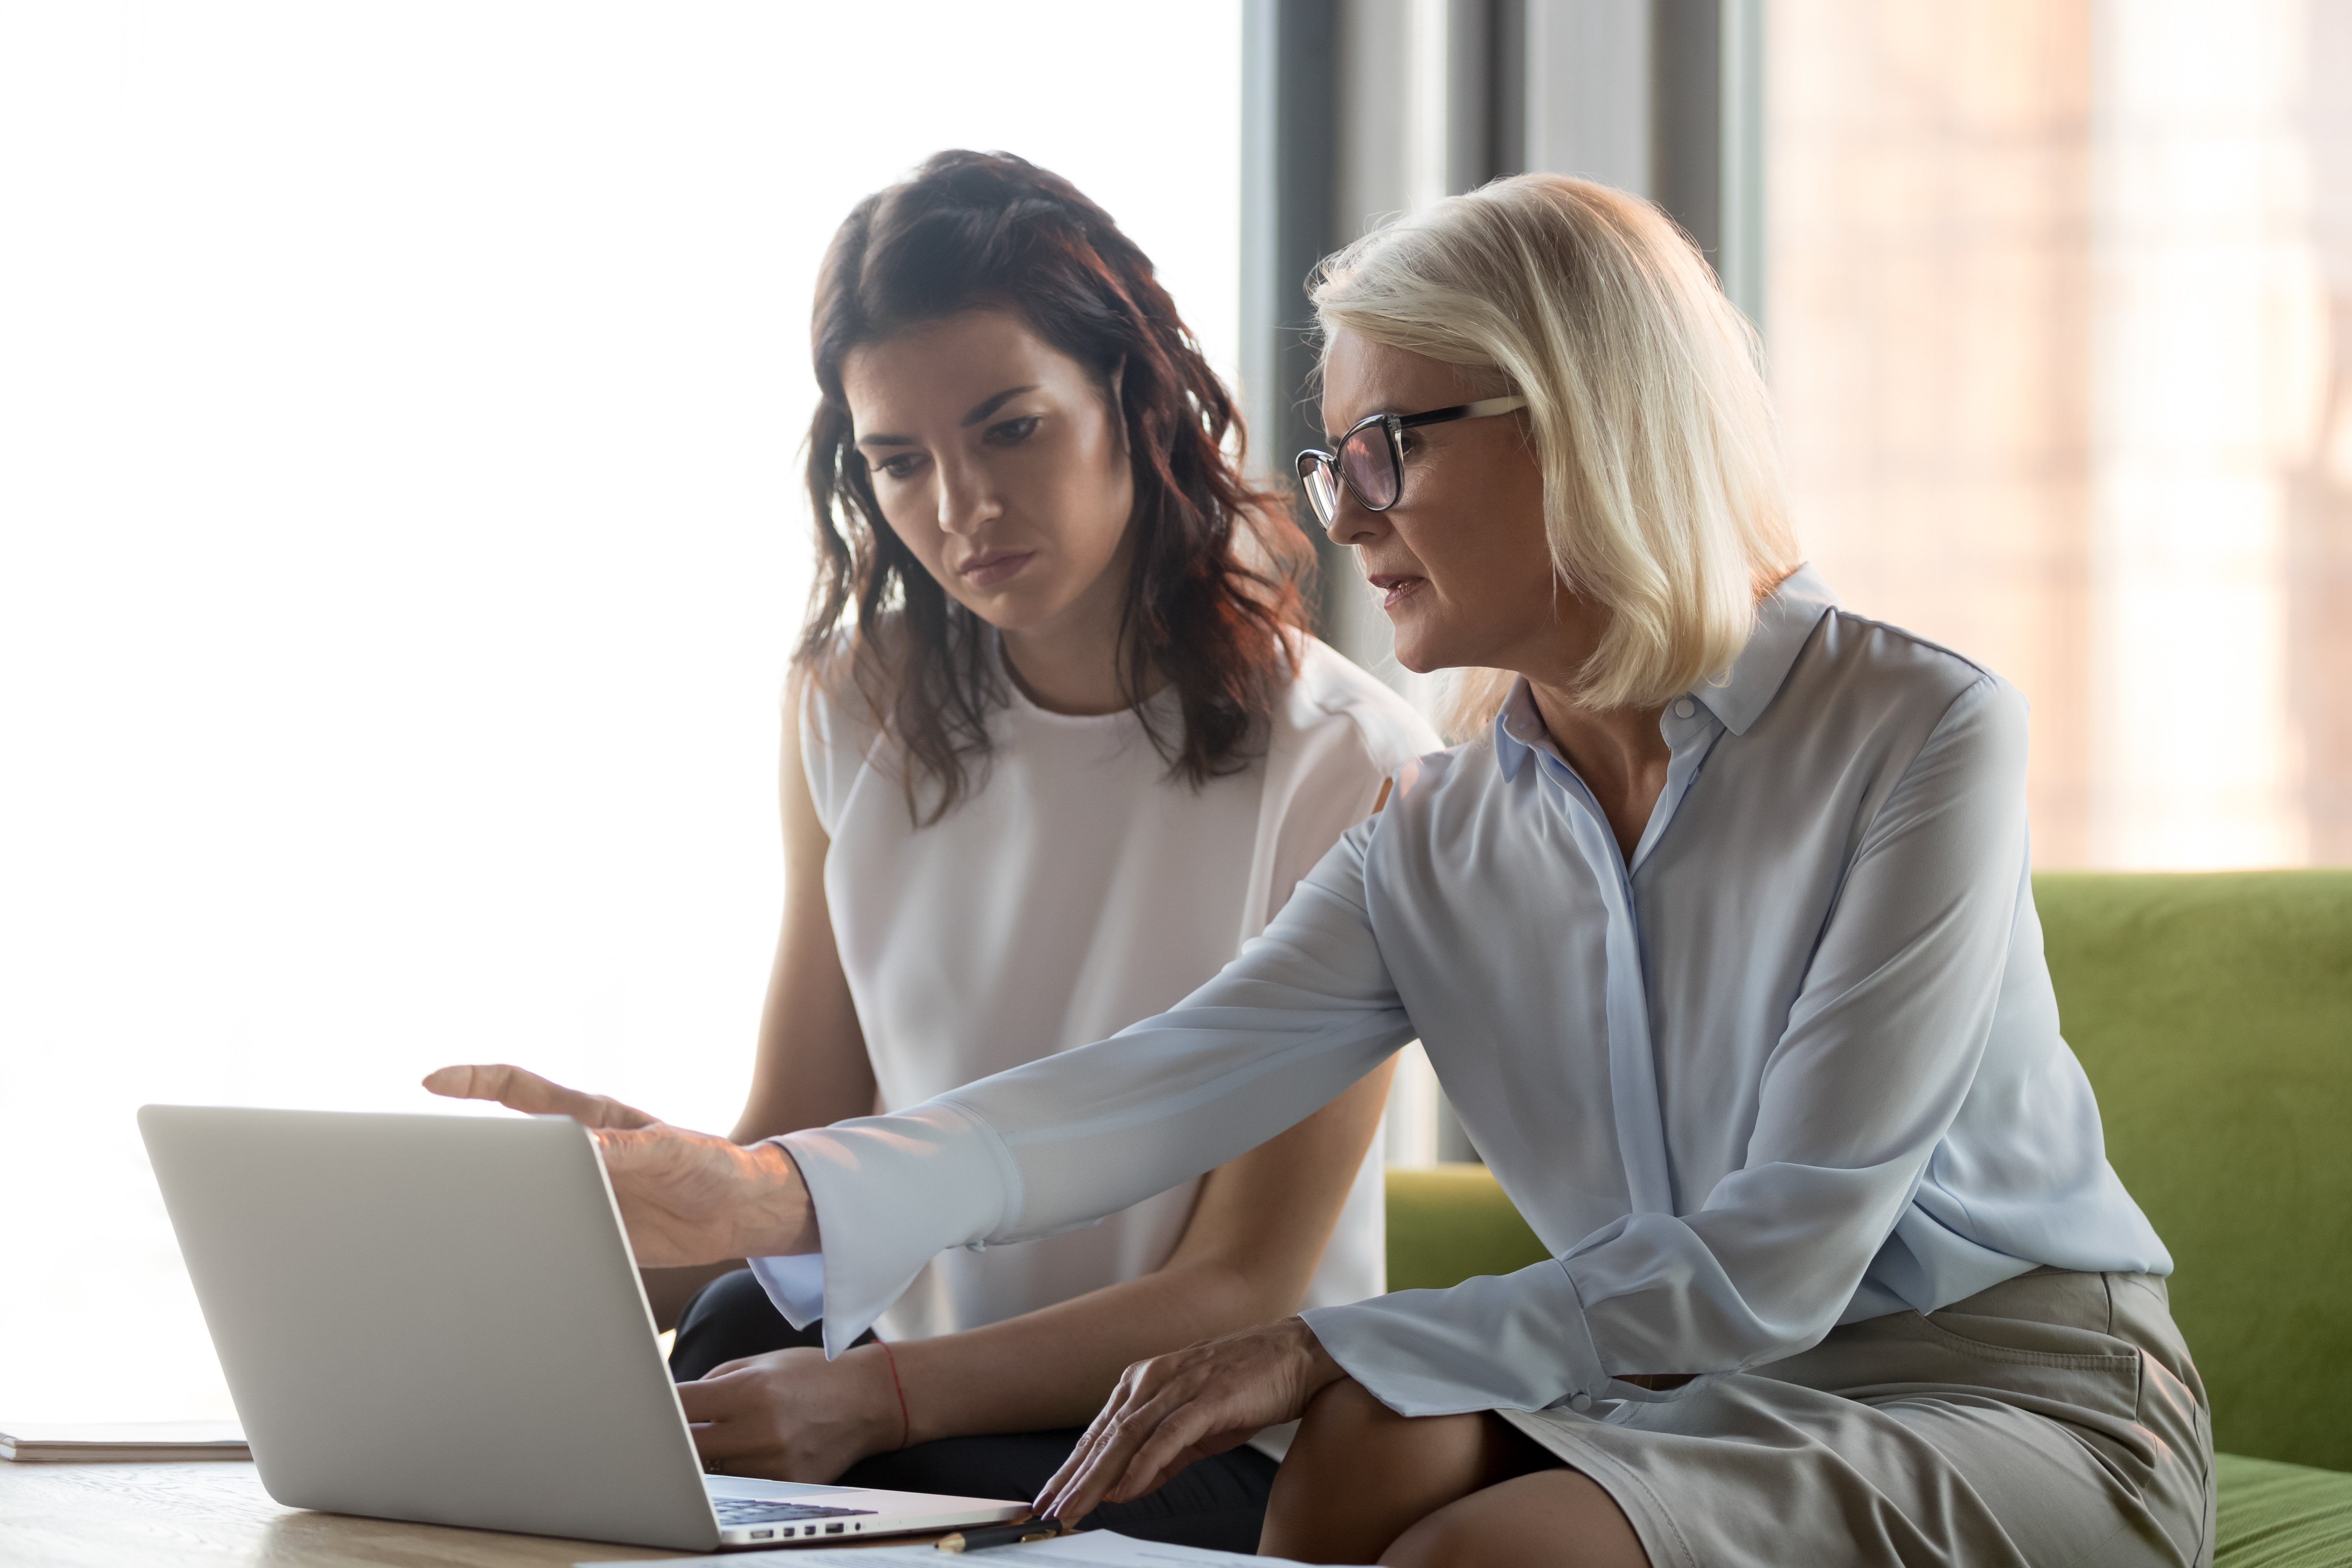 Middle aged woman mentoring young woman (Adobe stock image)